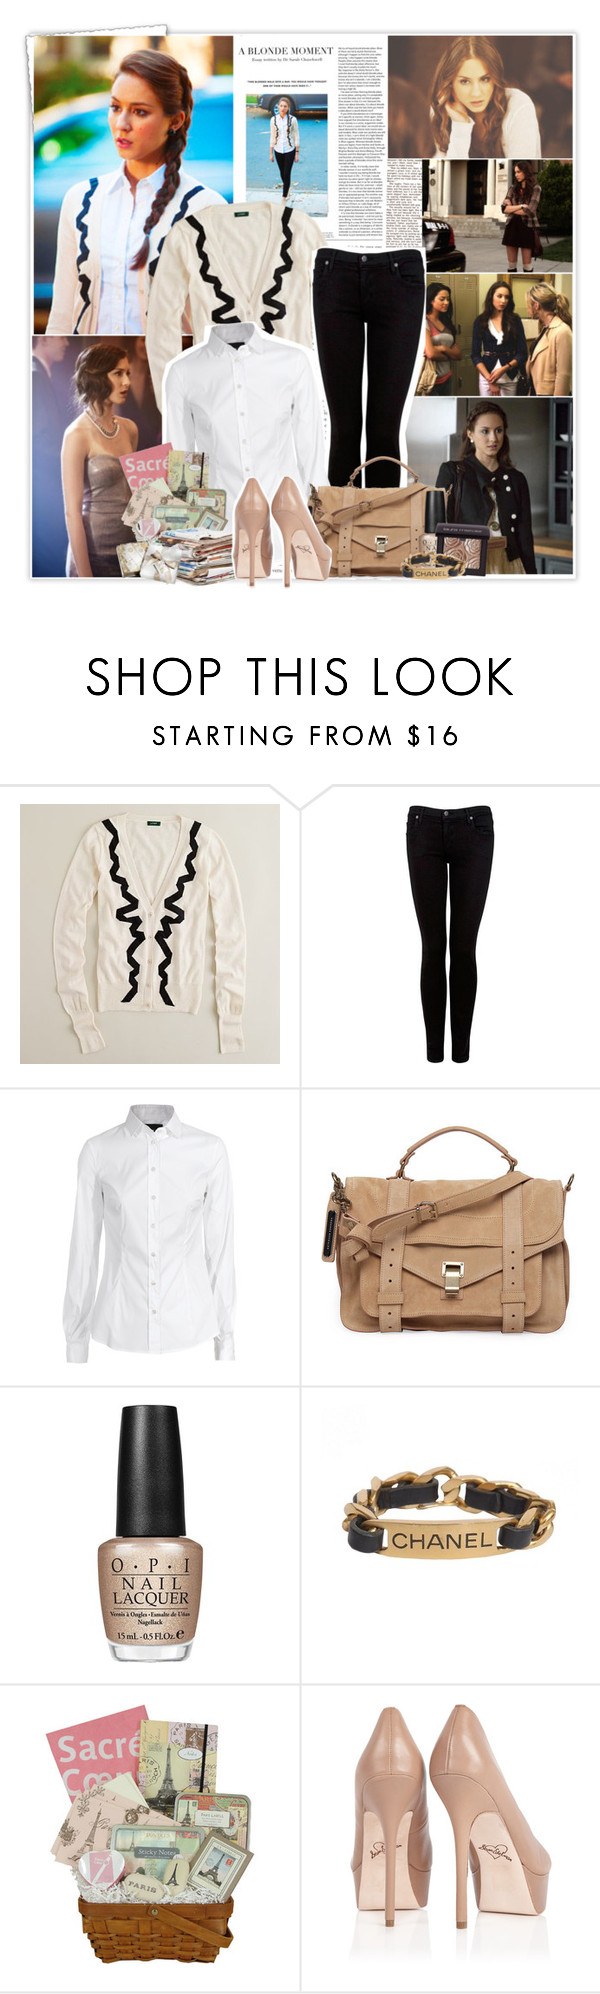 """""""TV show Style Diary: Spencer Hastings {PPL}"""" by ashleypetrova ❤ liked on Polyvore featuring Scoop, J.Crew, Citizens of Humanity, D&G, Proenza Schouler, OPI, Chanel, Local Celebrity and Sam Edelman"""